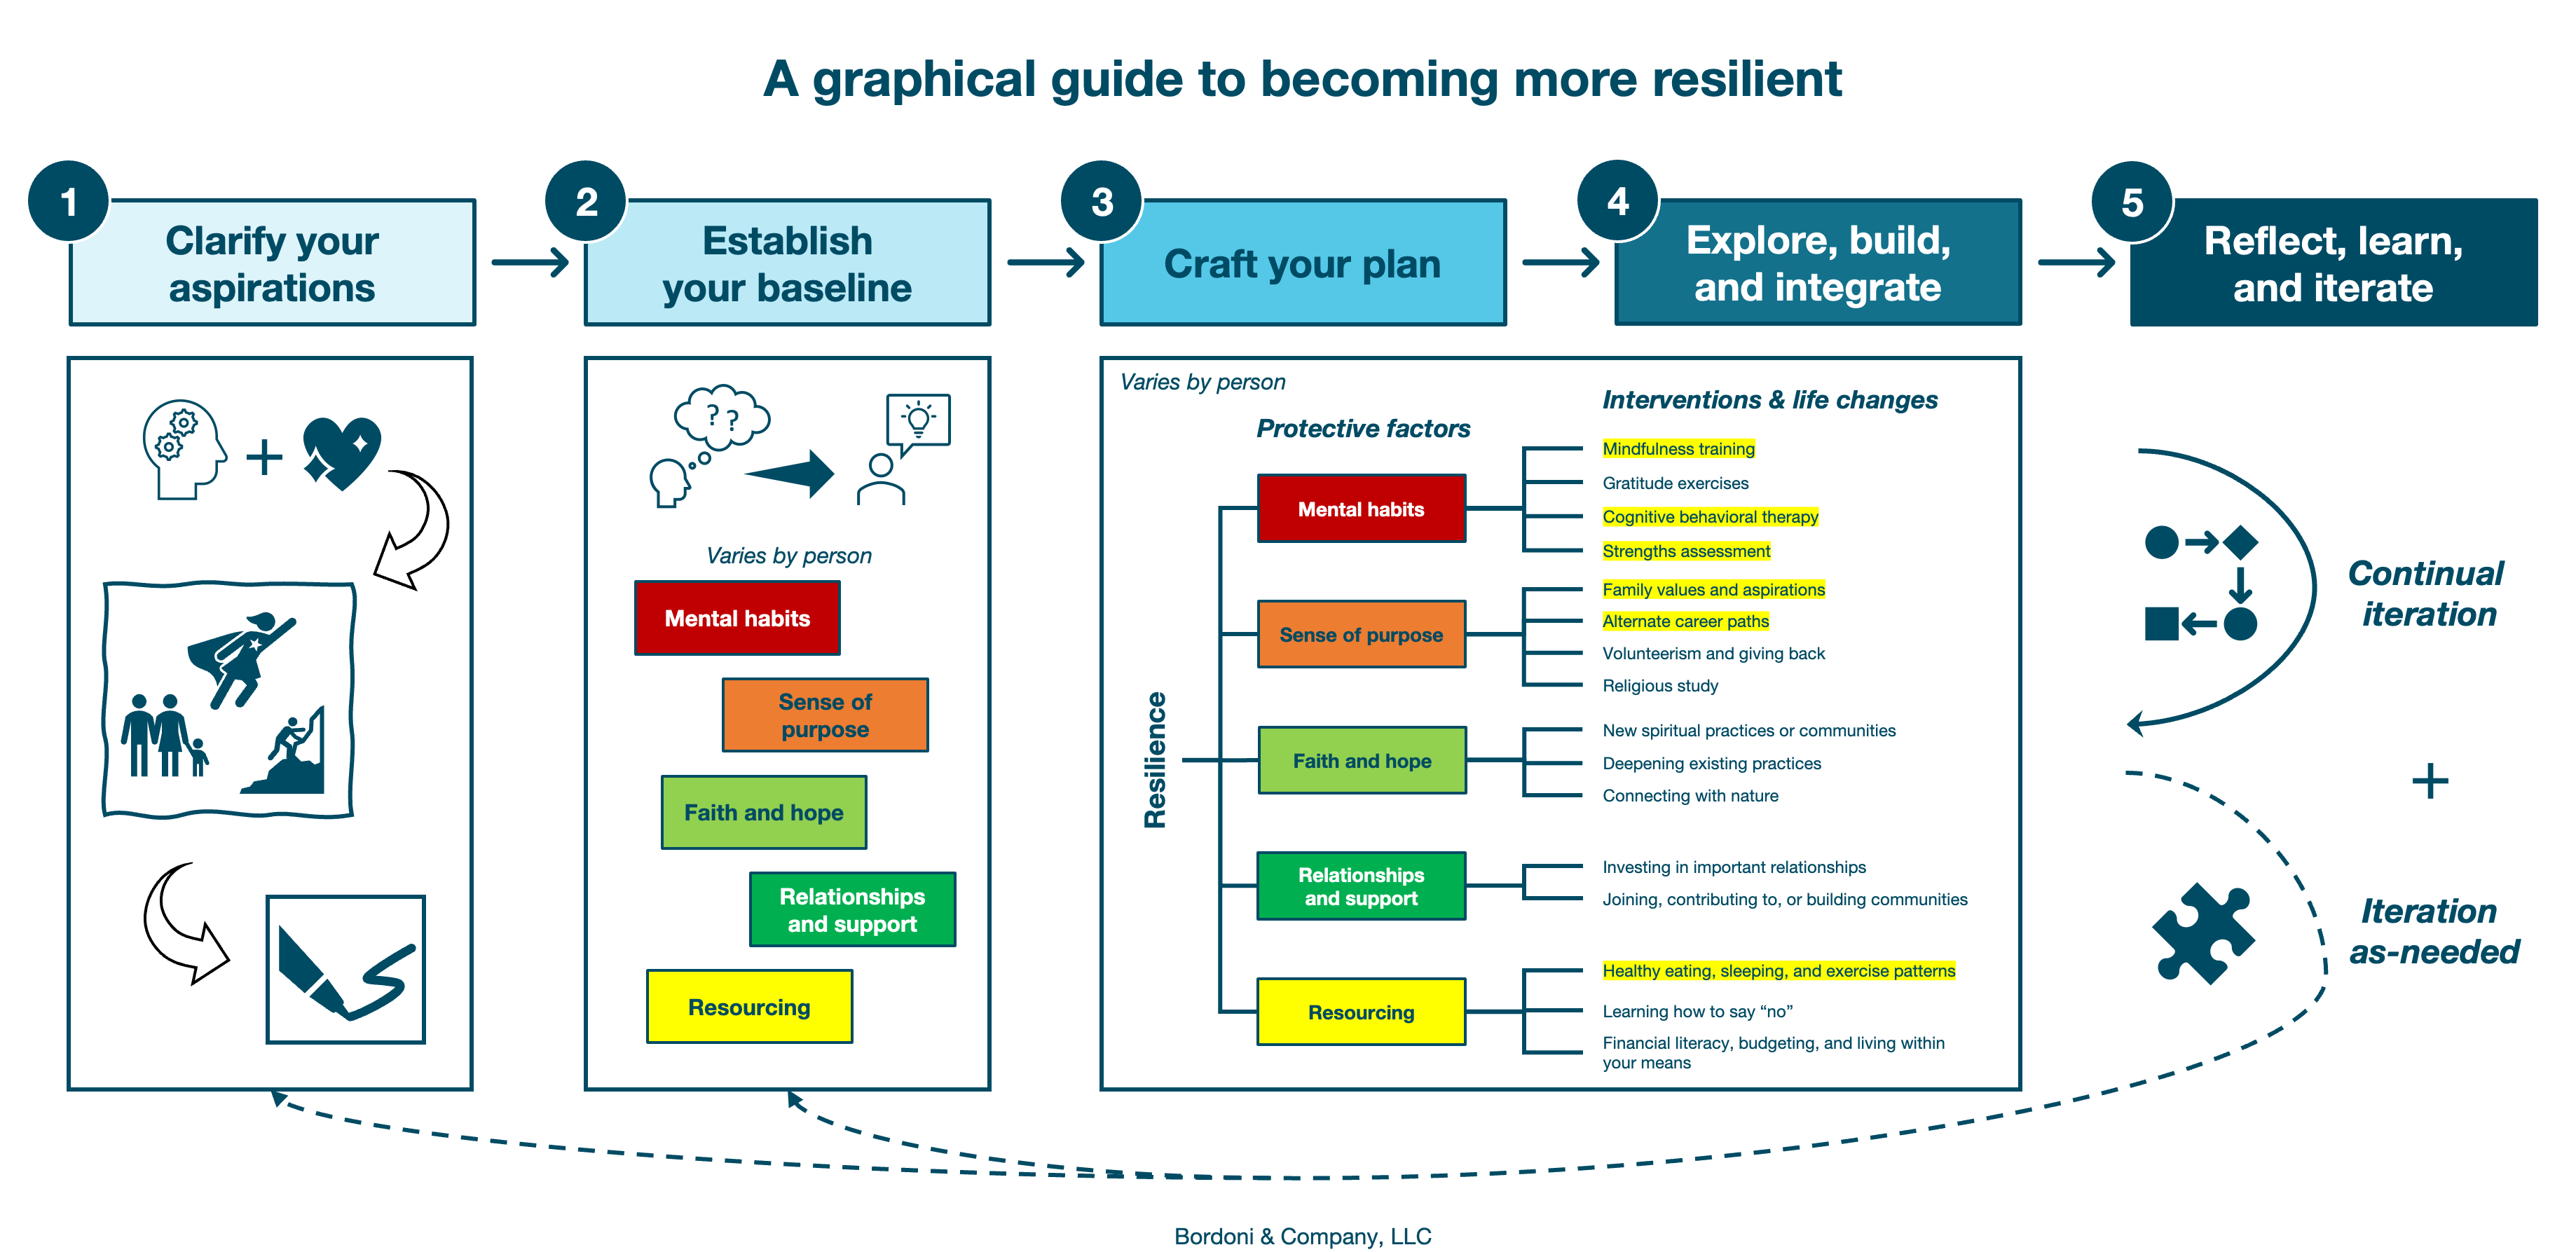 A graphical guide to becoming more resilient | Bordoni & Company